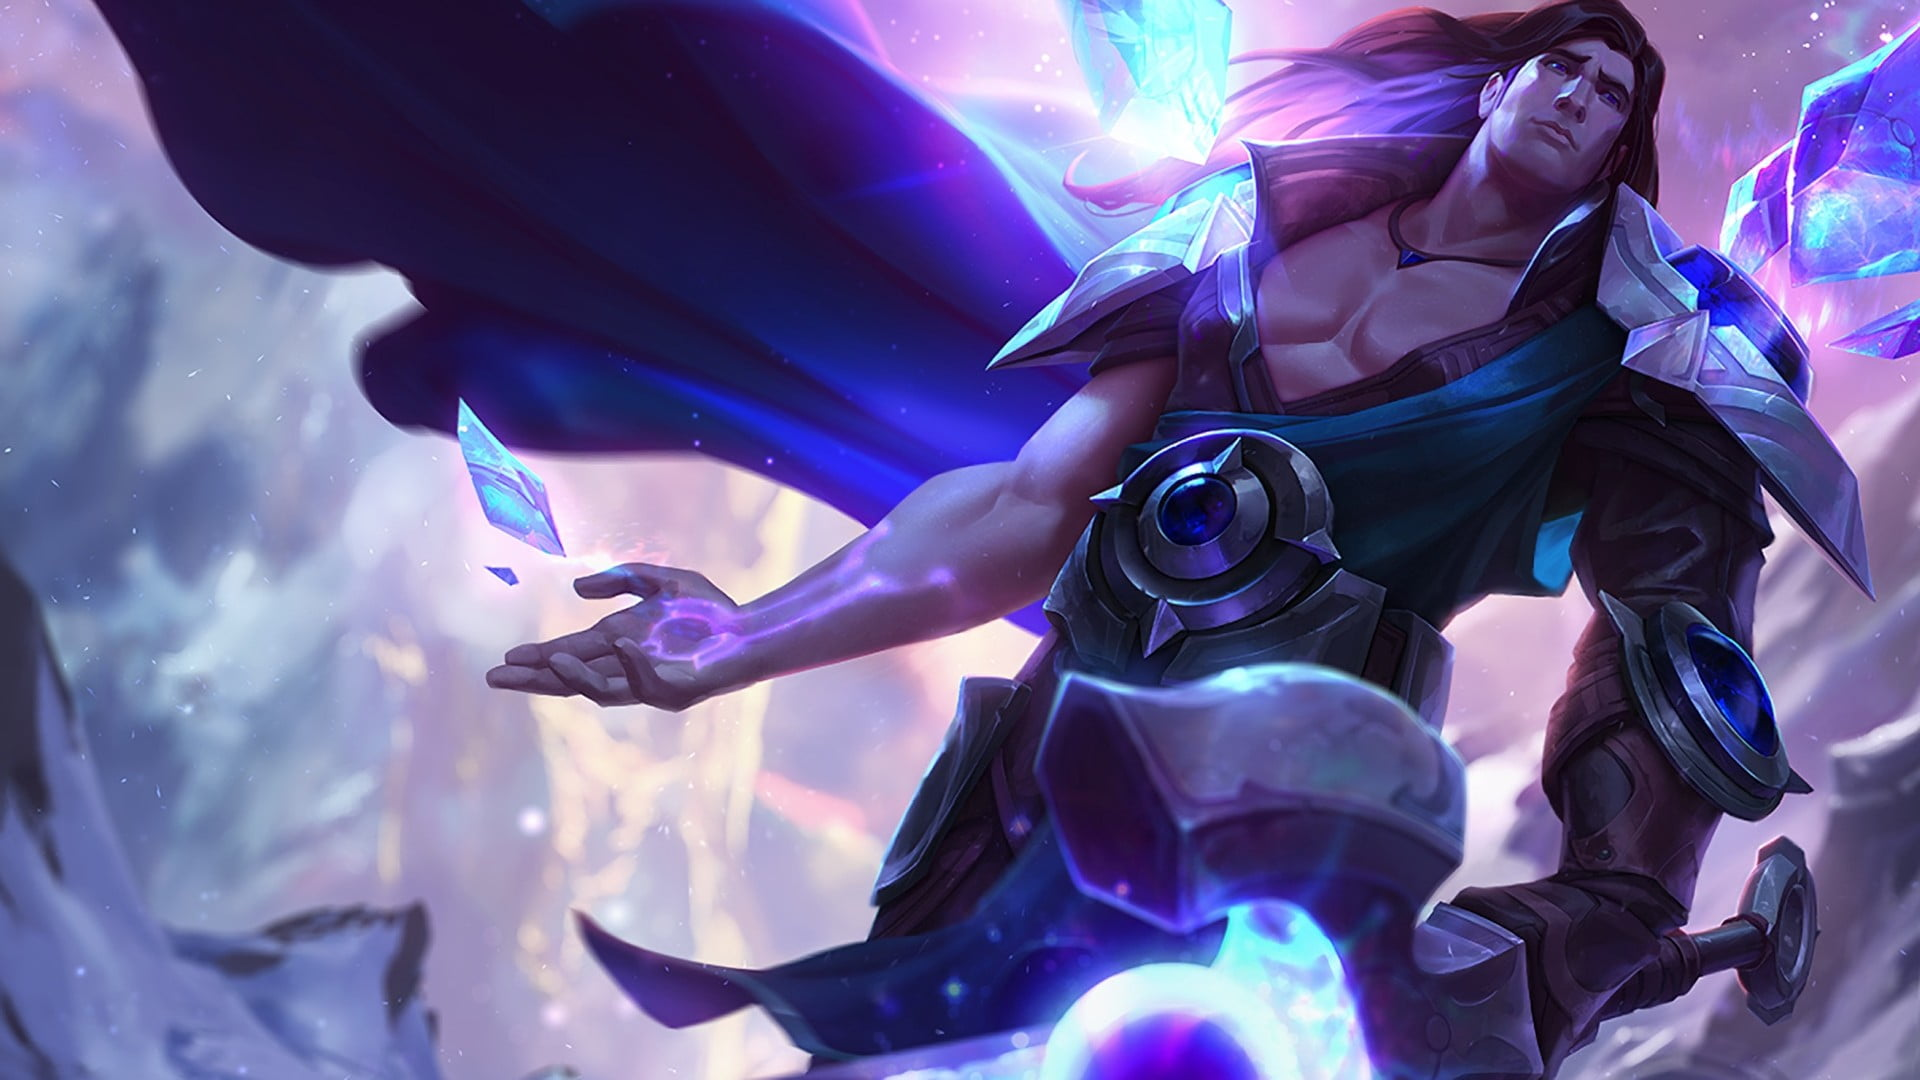 Taric illustration League of Legends Taric HD wallpaper 1920x1080